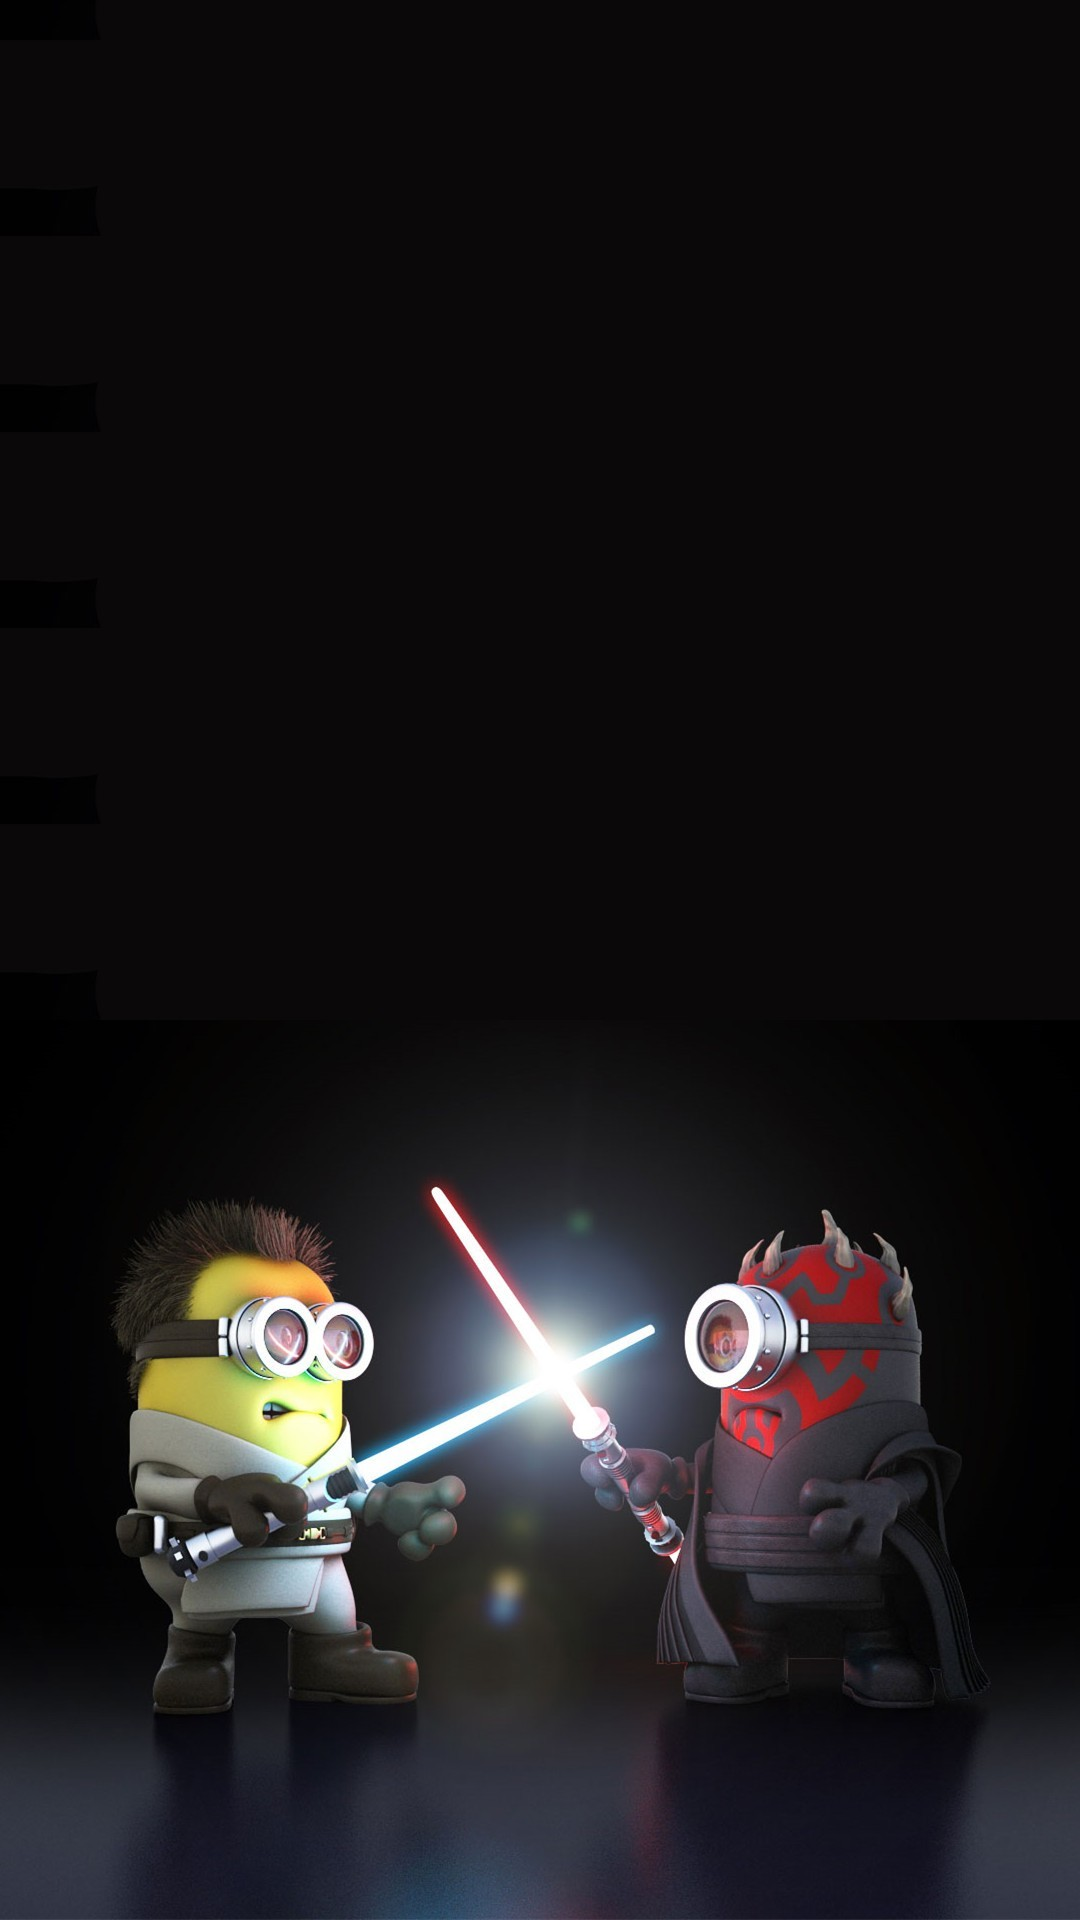 2014 Awesome Despicable Me Inspired Minions Star Wars iphone 6 plus  wallpaper for Halloween #iphone